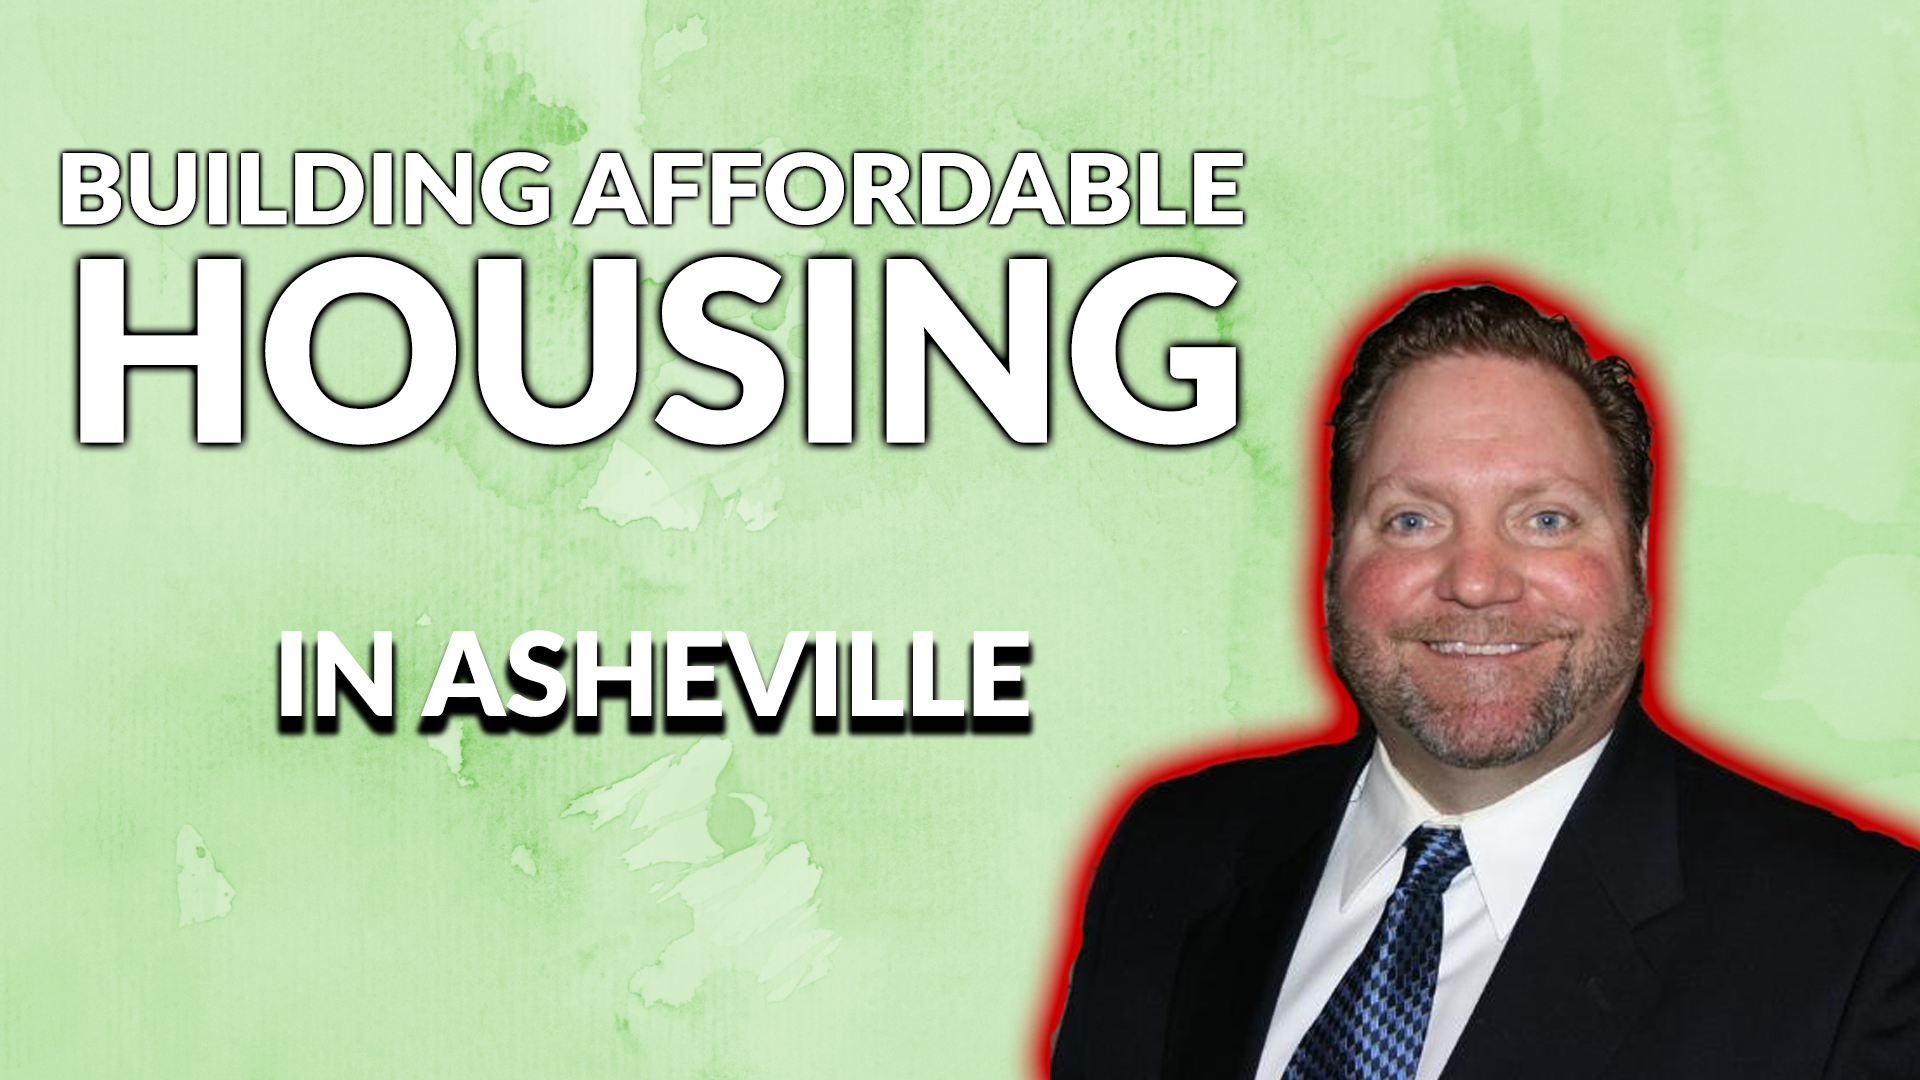 Developing Affordable Housing in Asheville NC with Kirk Booth